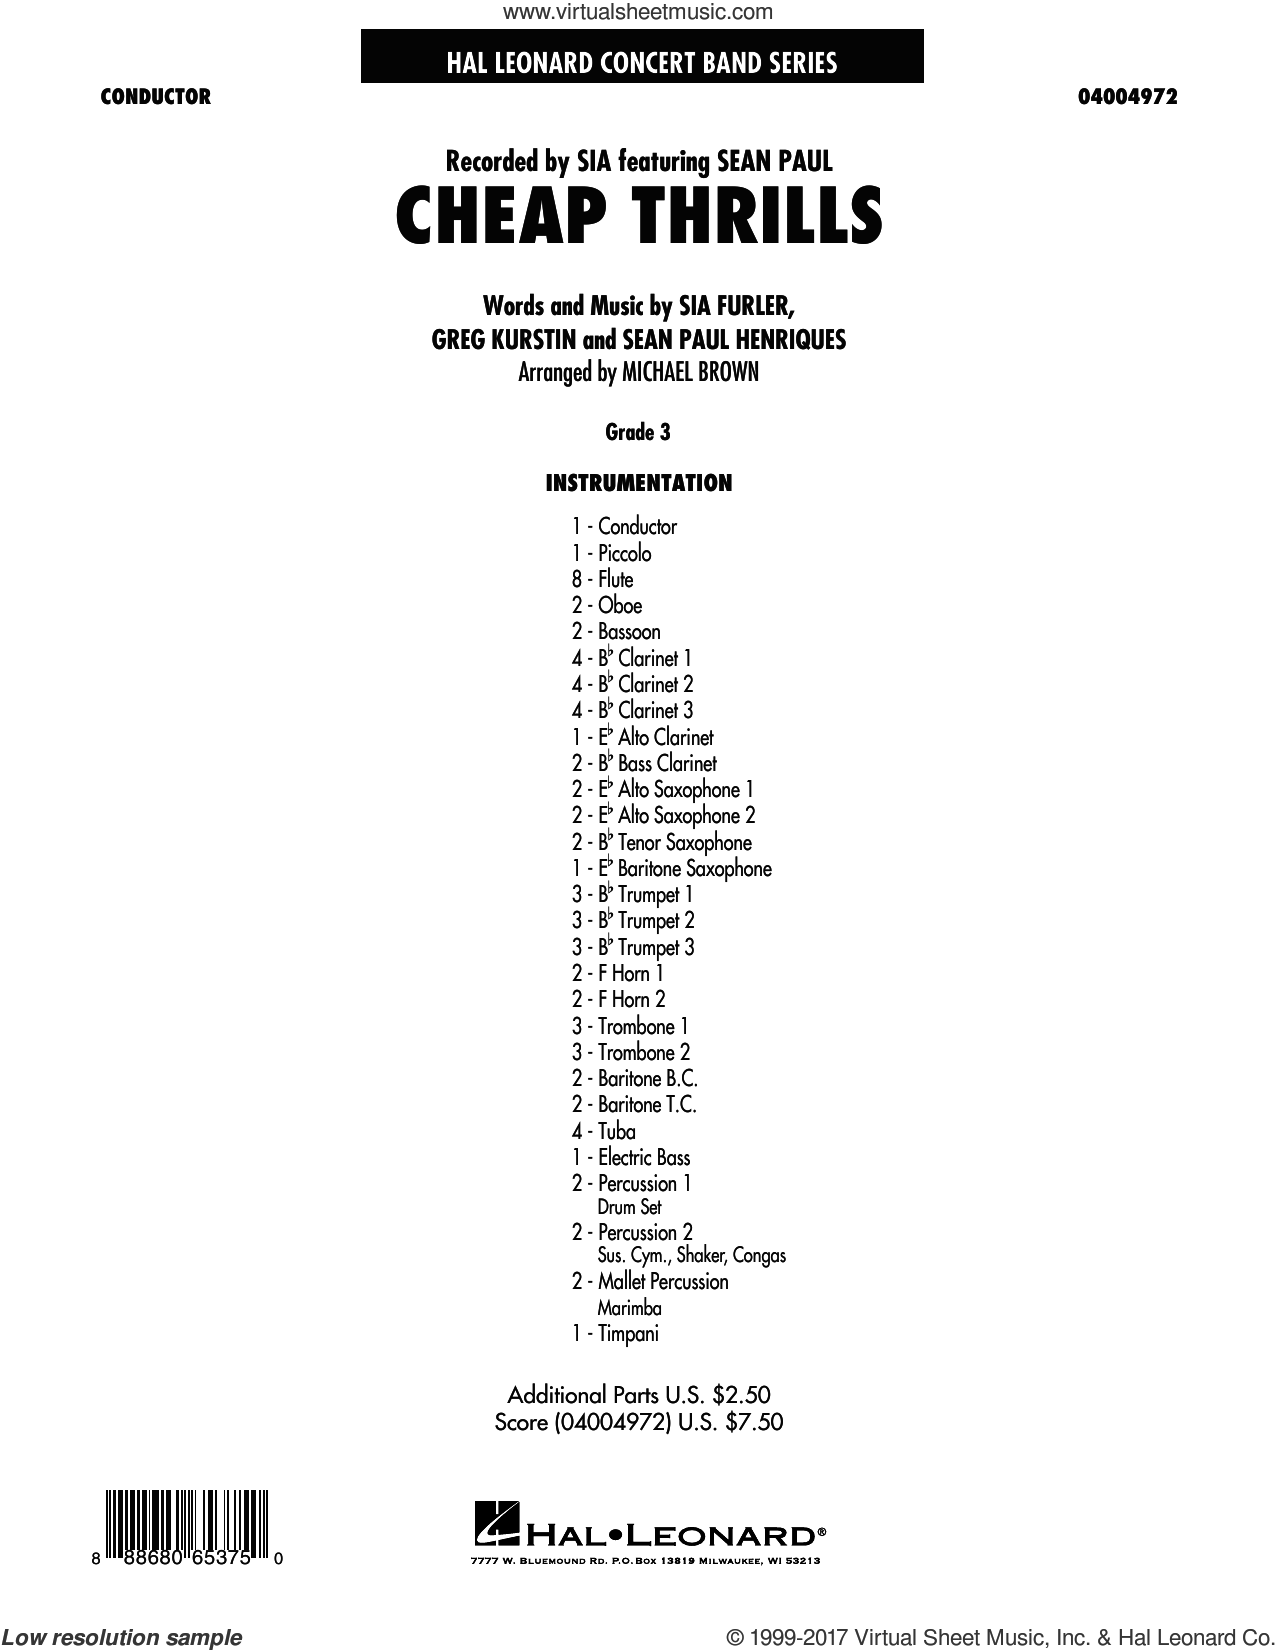 Cheap Thrills (COMPLETE) sheet music for concert band by Michael Brown, Greg Kurstin, Sia feat. Sean Paul and Sia Furler, intermediate skill level